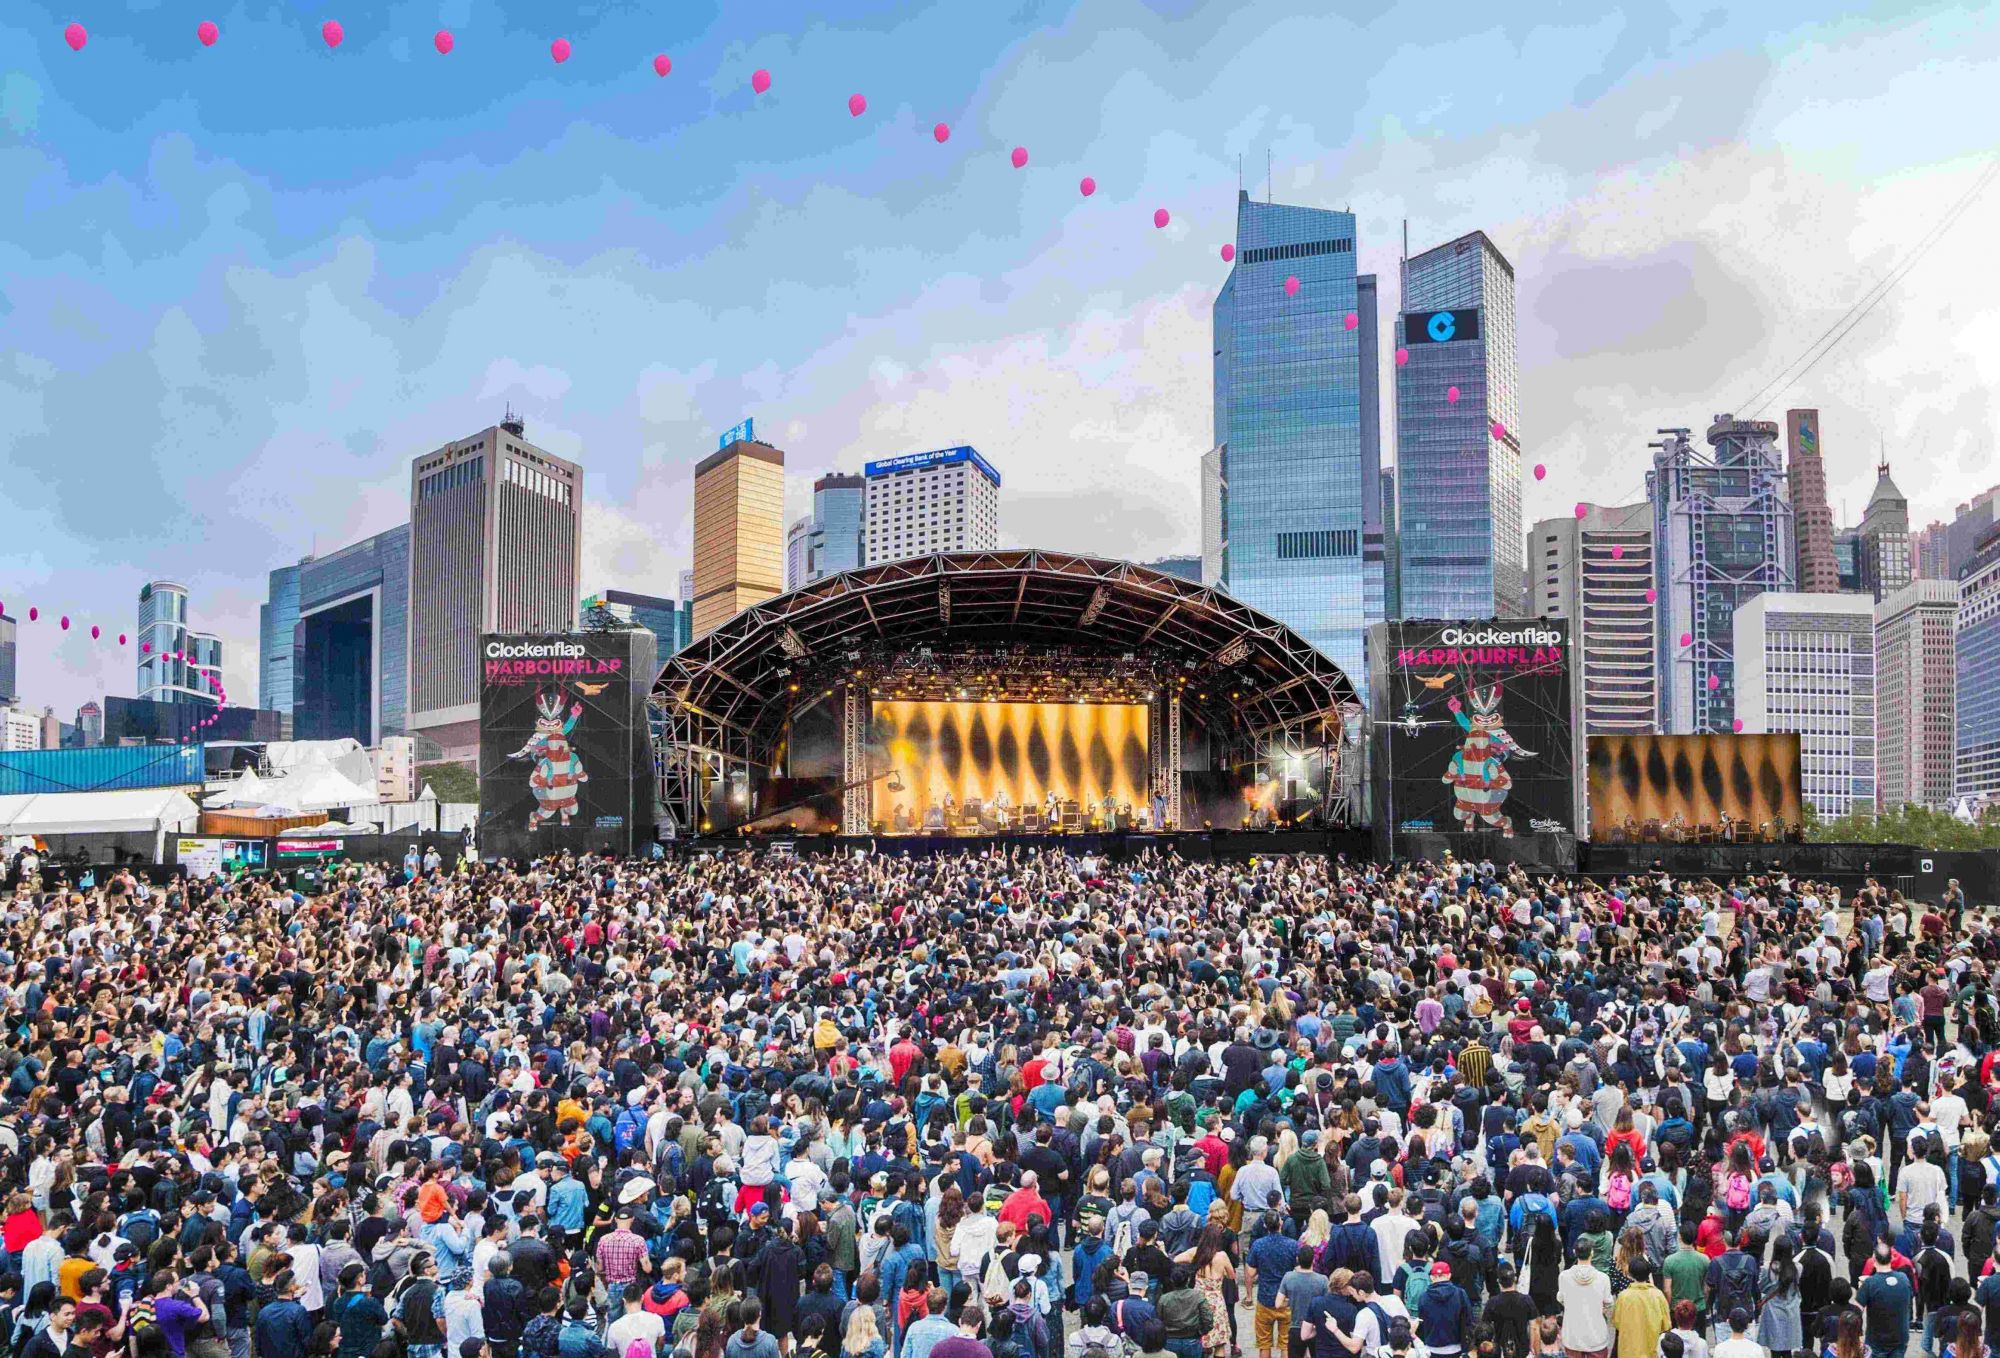 VIPs Only: The Tatler Guide To Clockenflap 2018